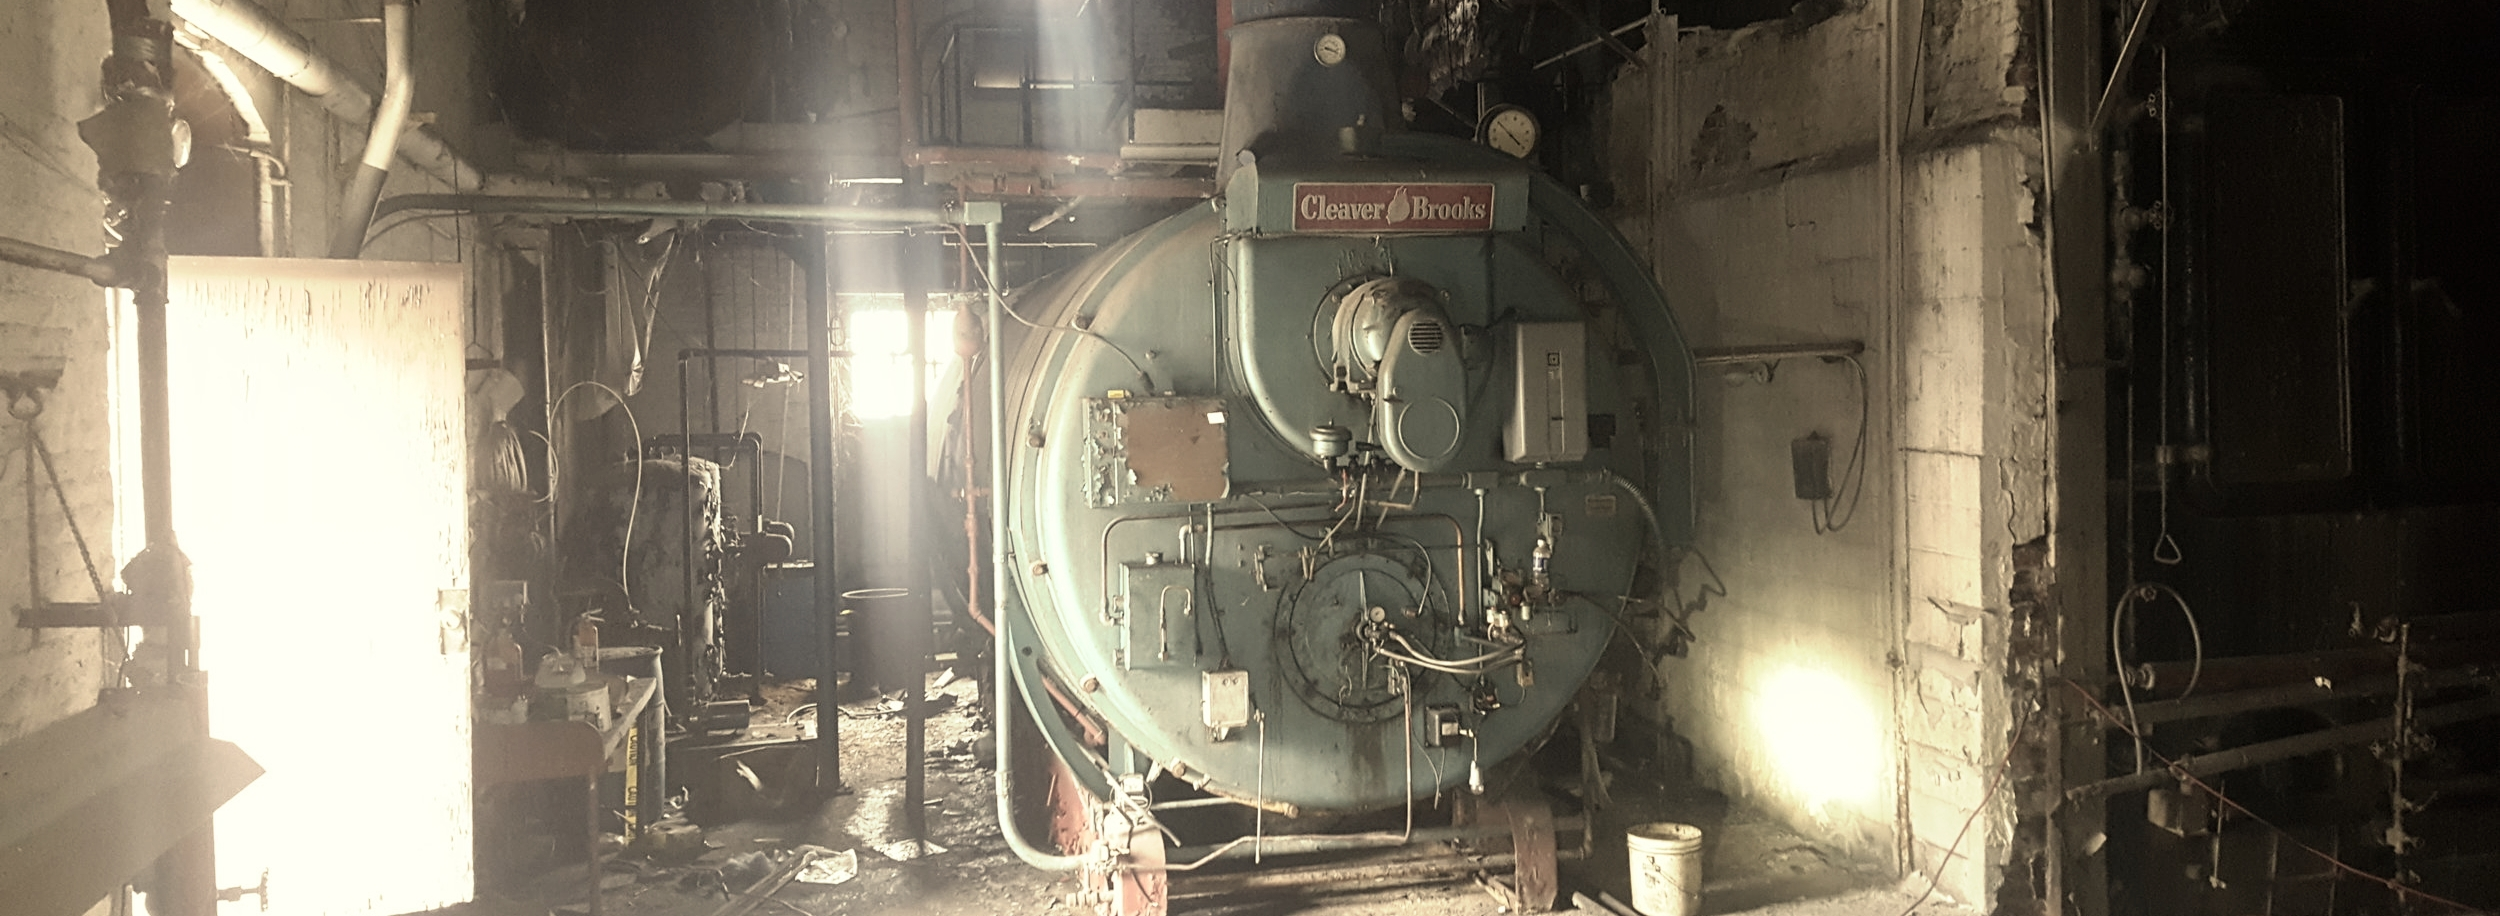 EXISTING BOILER HOUSE